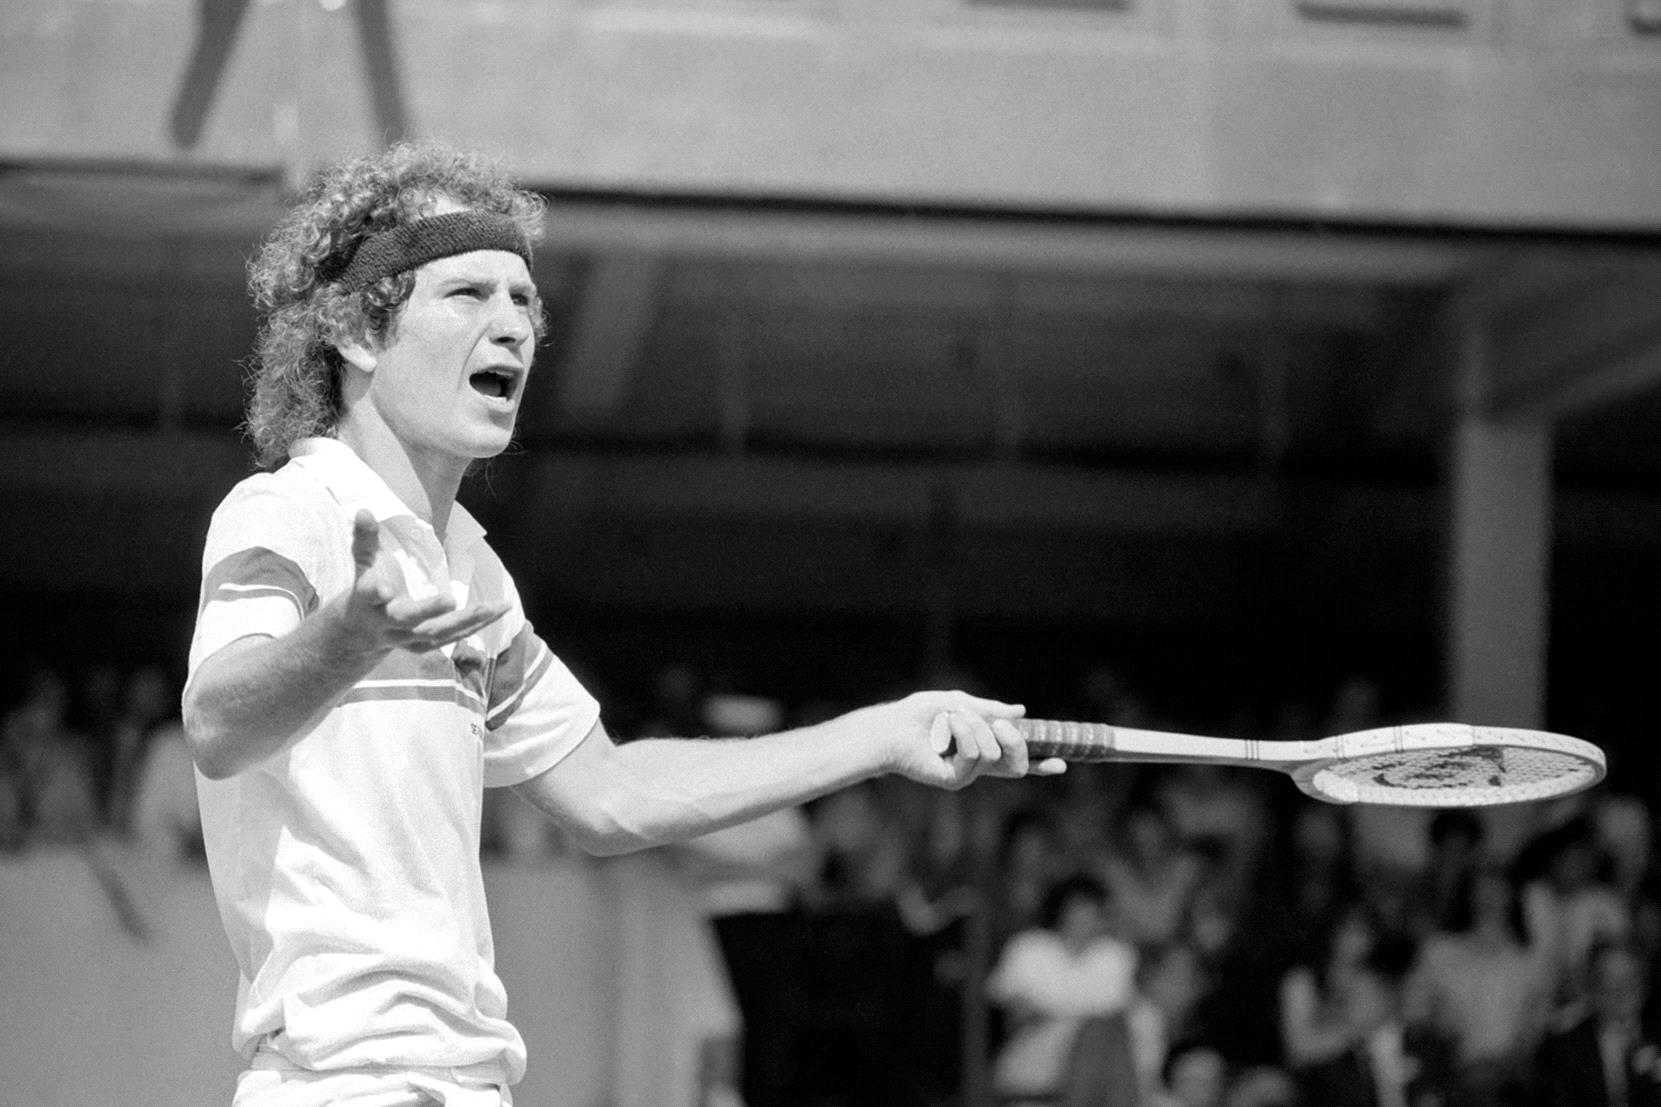 We're channelling John McEnroe for our picture tip this week.